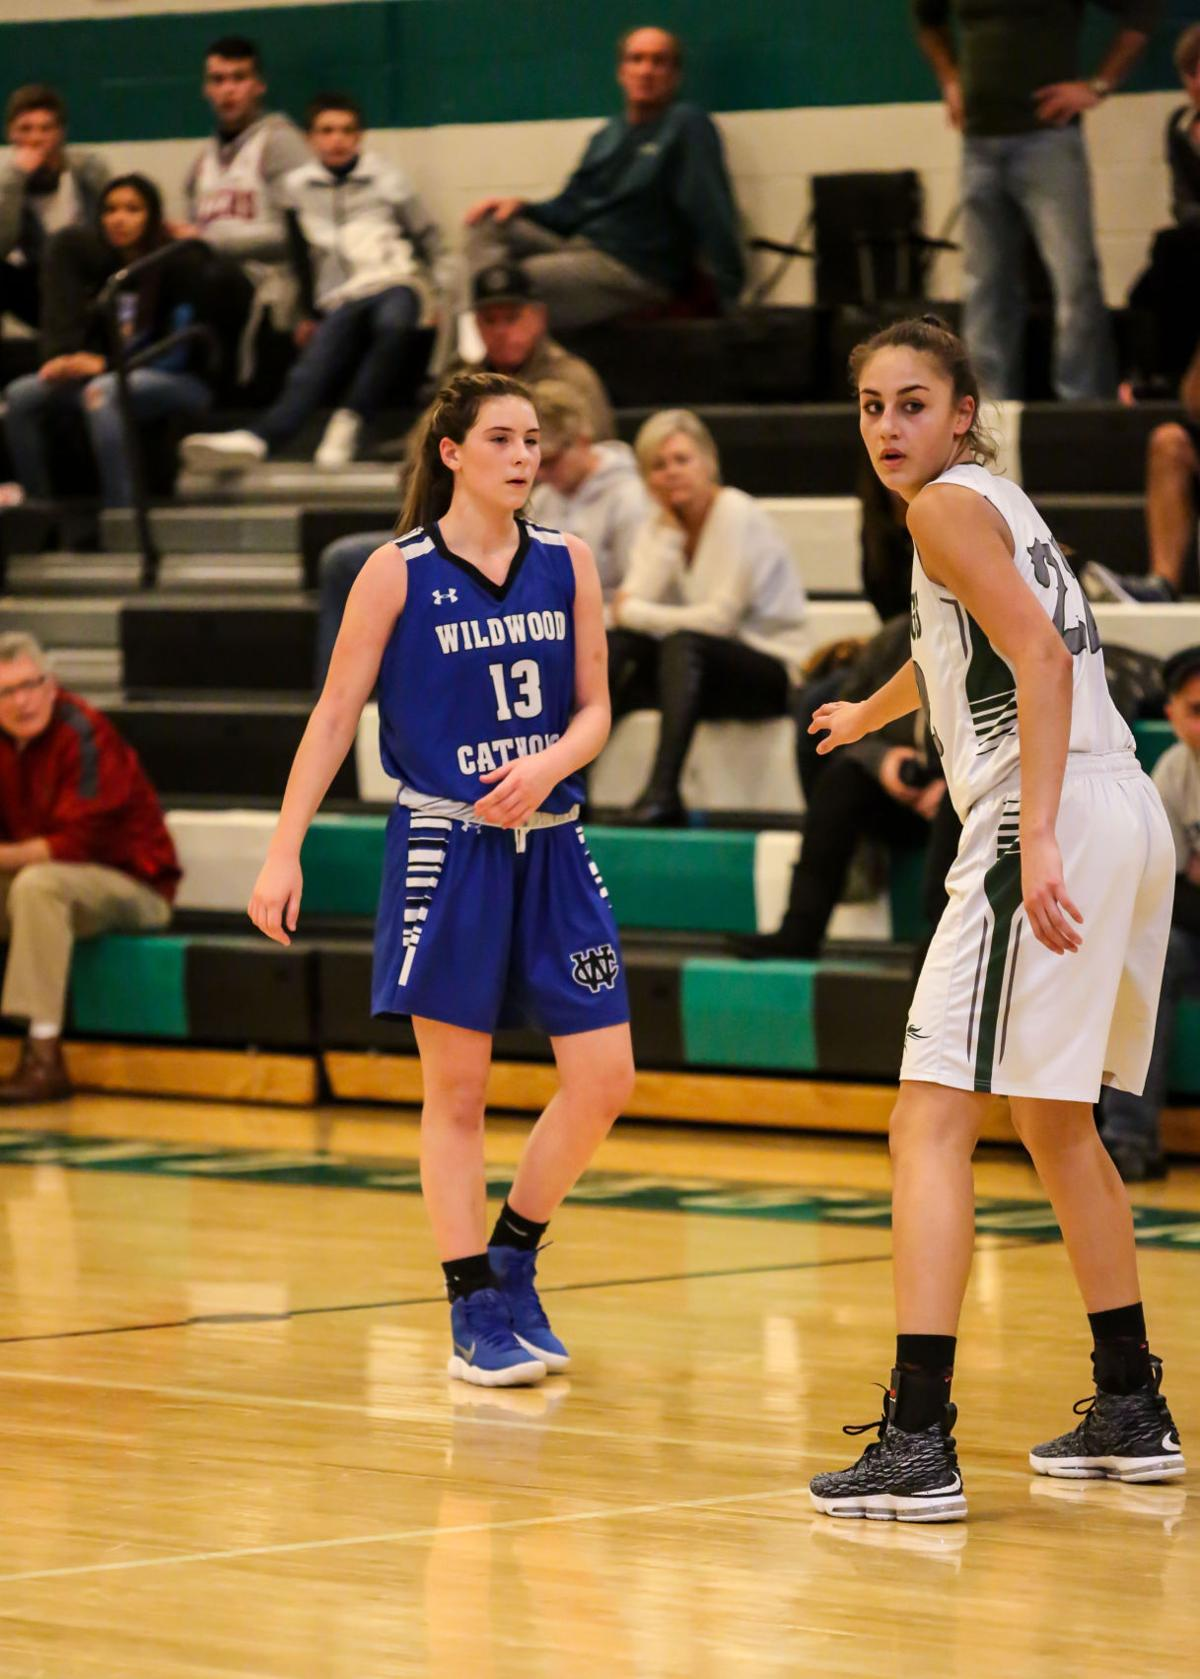 mainland catholic girl personals Mainland girls top gloucester catholic in dramatic double overtime  the gloucester catholic and mainland girls' basketball game was a meeting between two.